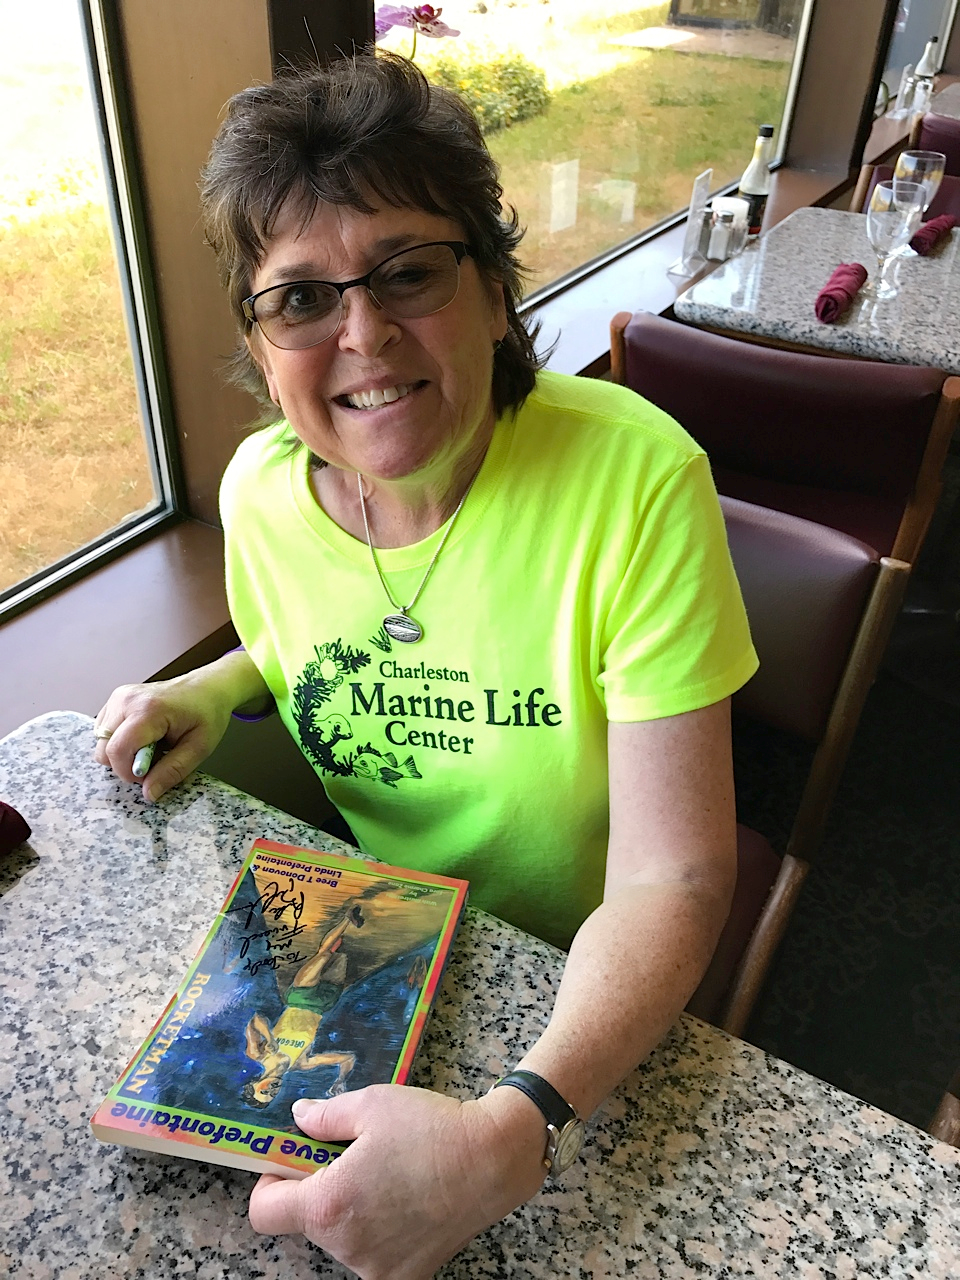 Linda Prefontaine with Signed Book